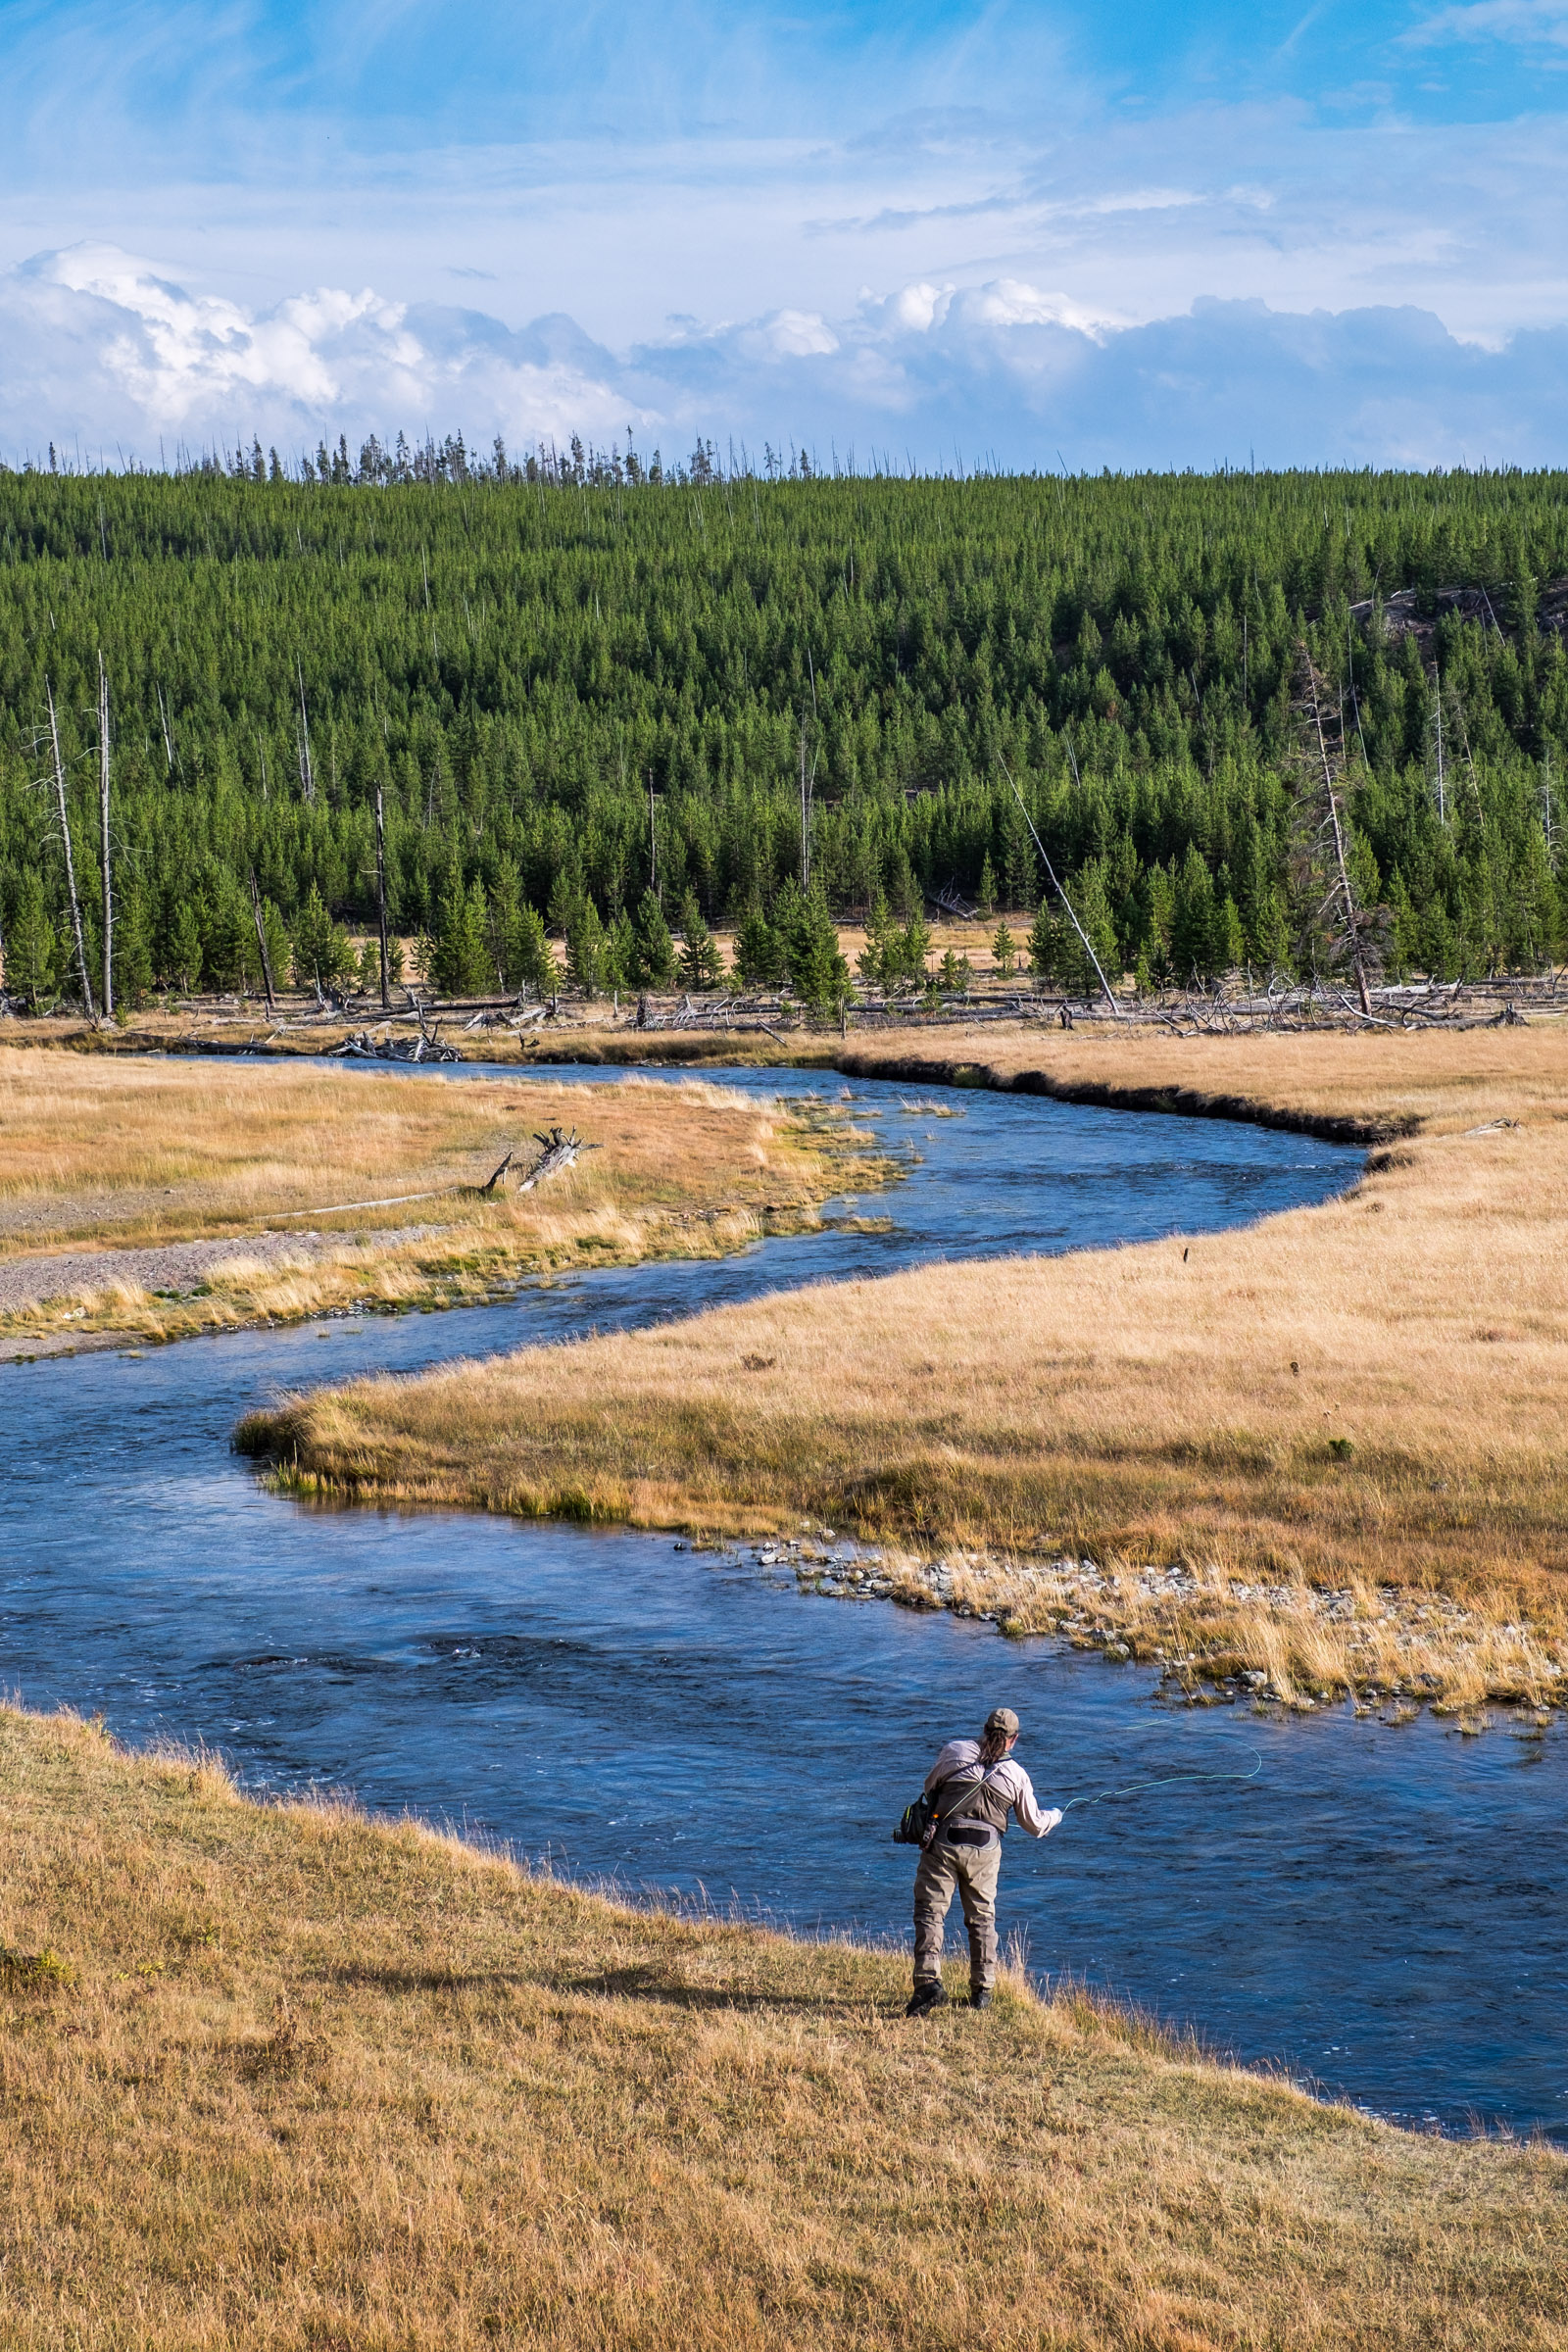 Anglers come from all over the world to fly fish in the Yellowstone River.